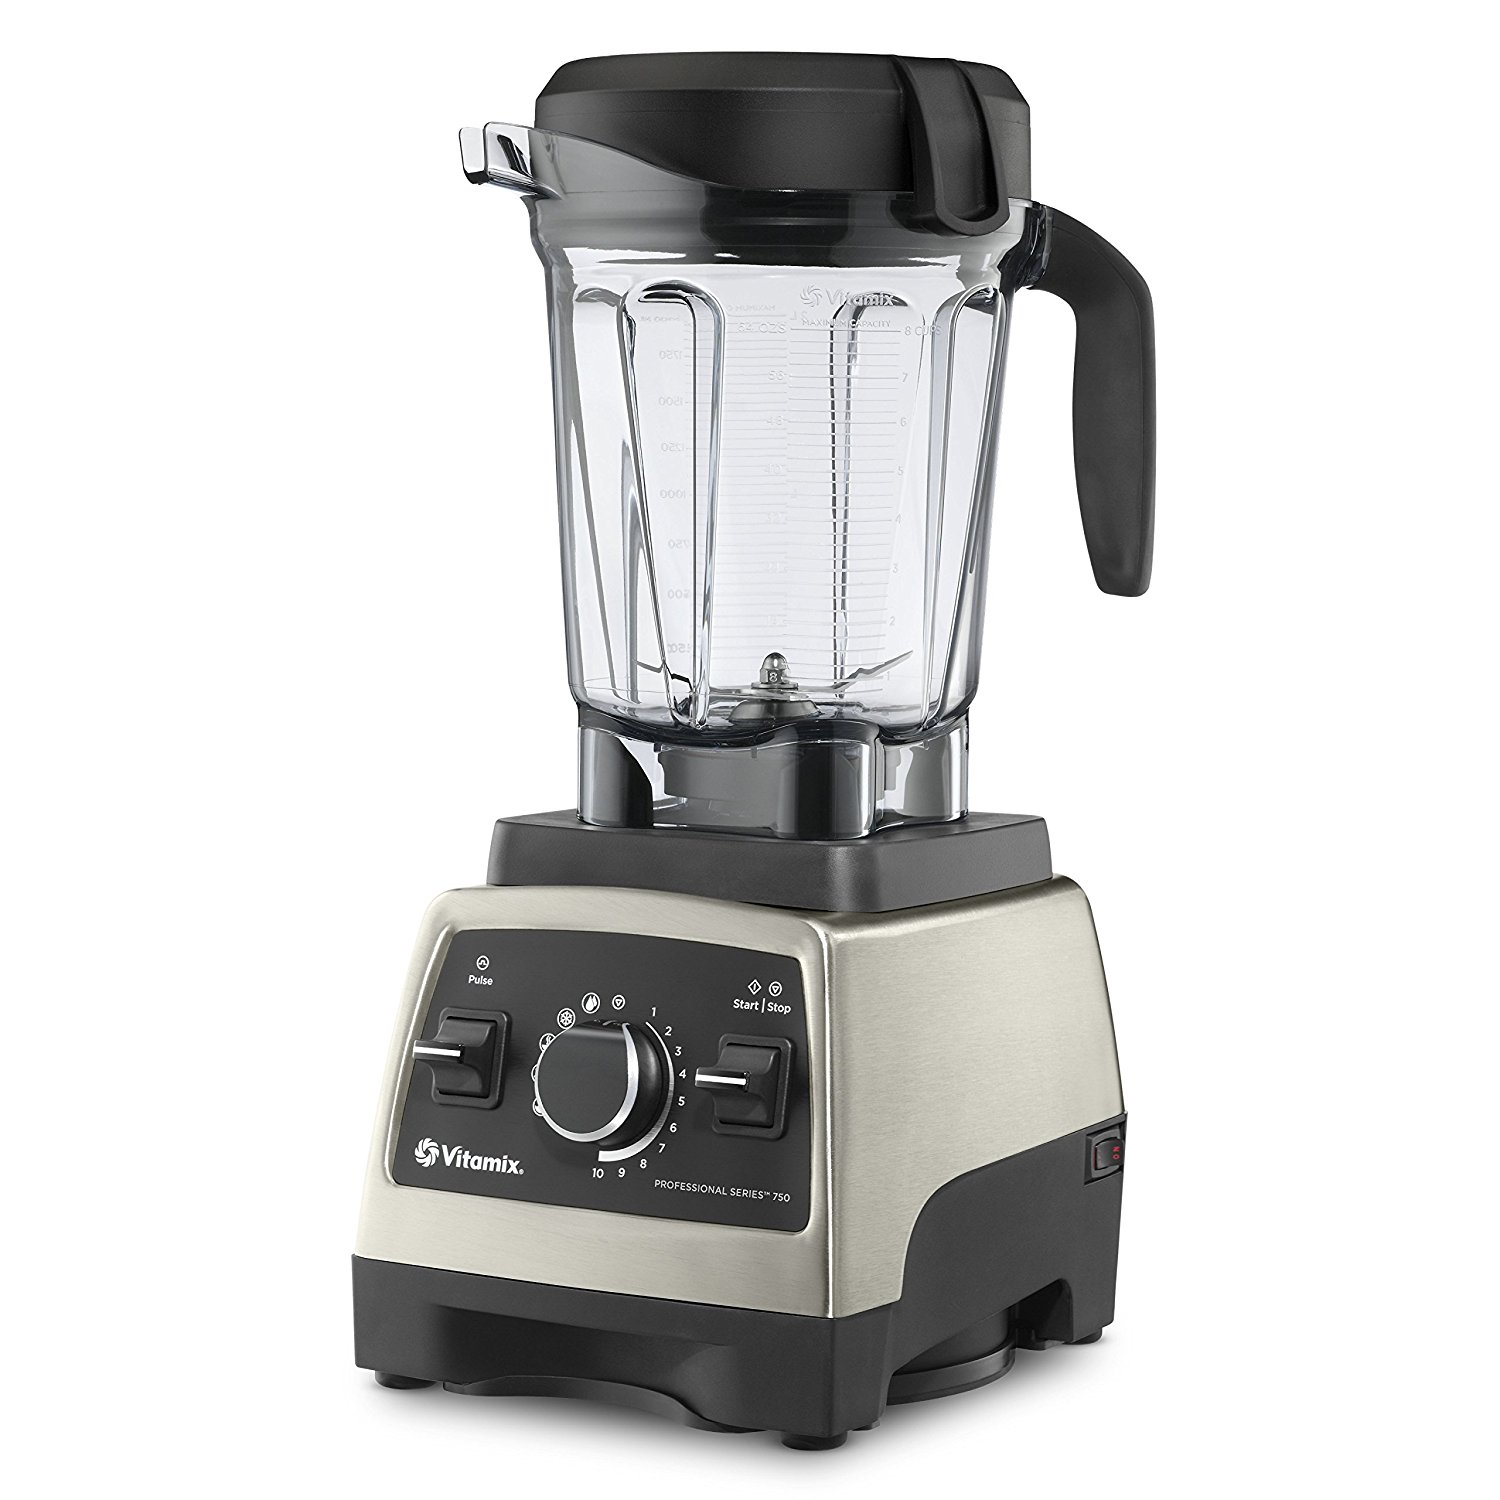 Vitamix Pro Series 750 Brushed Stainless Finish with 64 oz Container and Cookbook Heritage